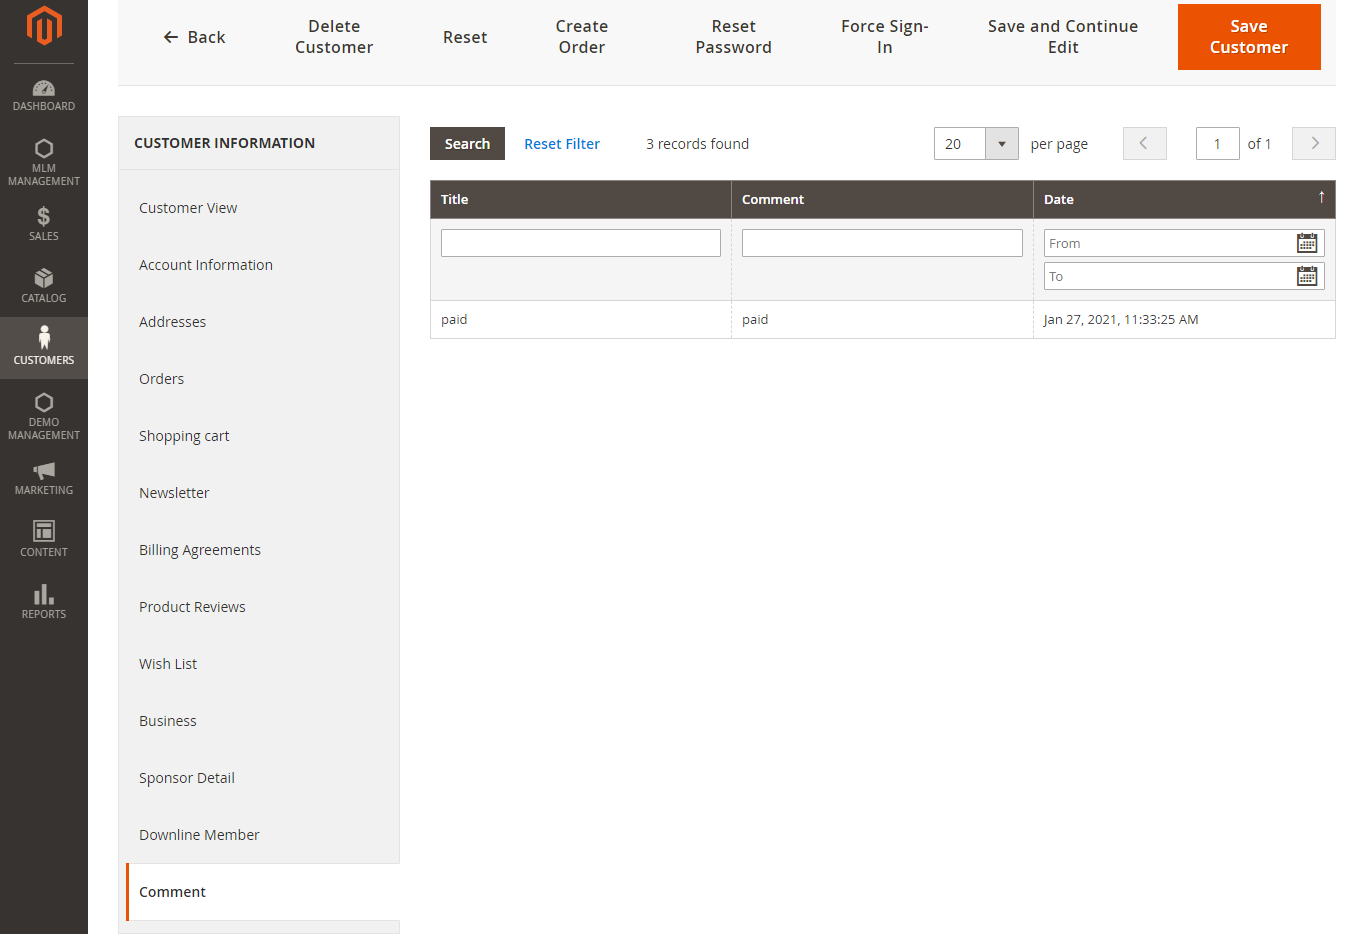 webkul_magento2_mlm_admin_end_comment_view